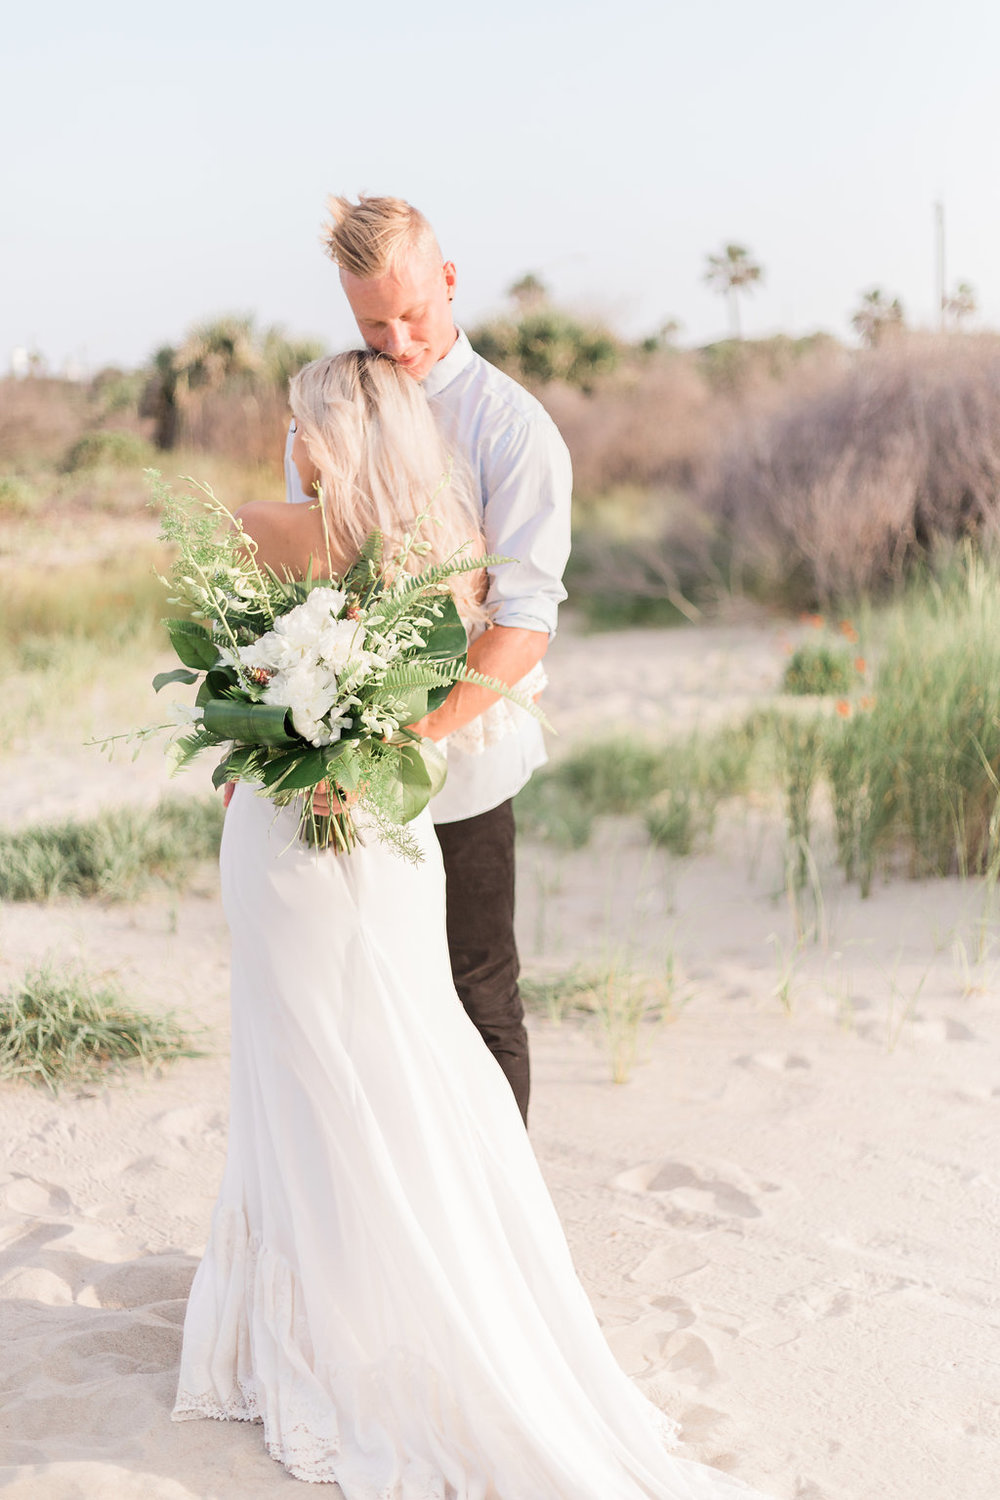 savannah-bridal-shop-last-minute-wedding-planning-details-you-should-start-on-NOW-bluebell-photography-daughters-of-simone-tybee-island-wedding-13.jpg